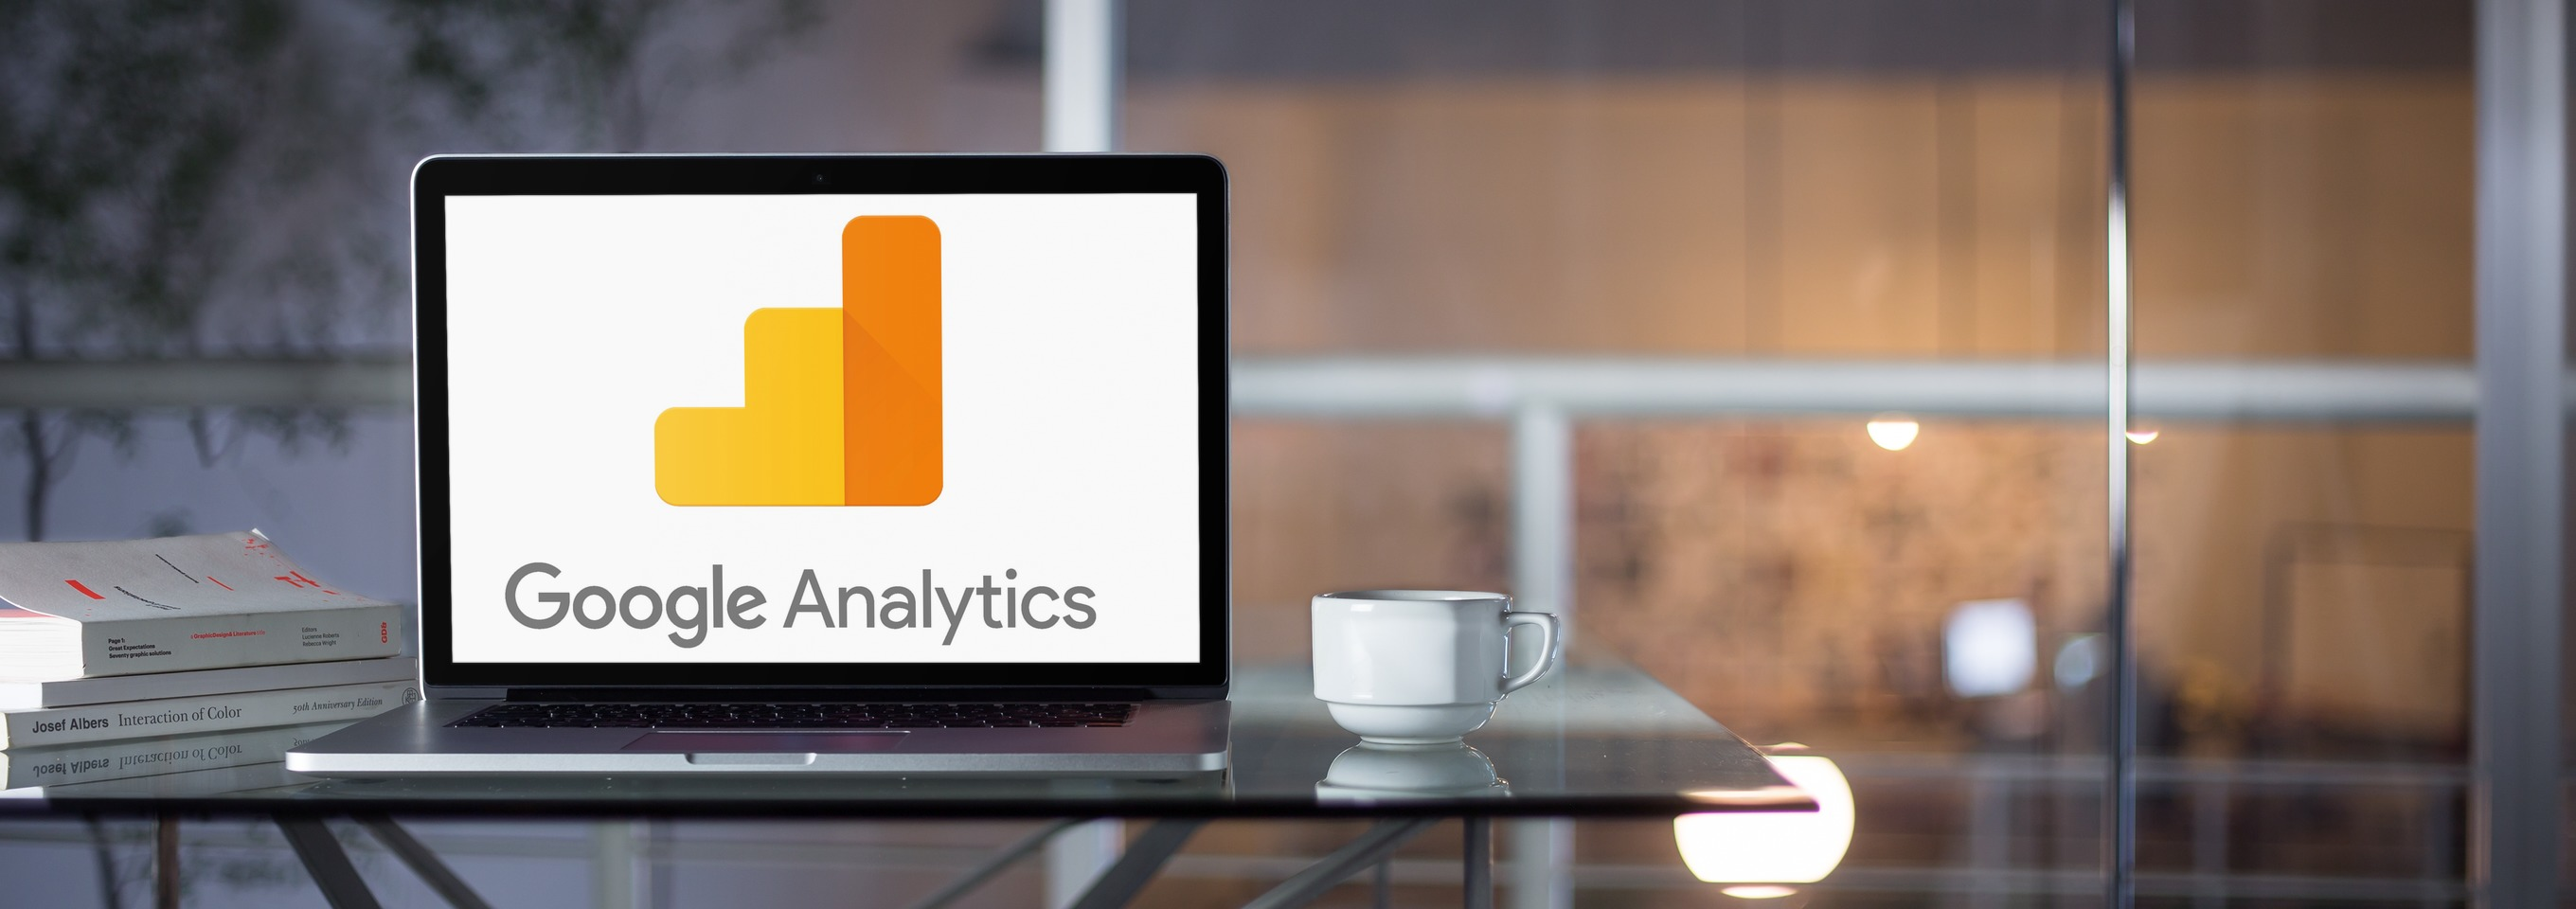 11 Useful Metrics That Are Easy to Find & Measure on Google Analytics